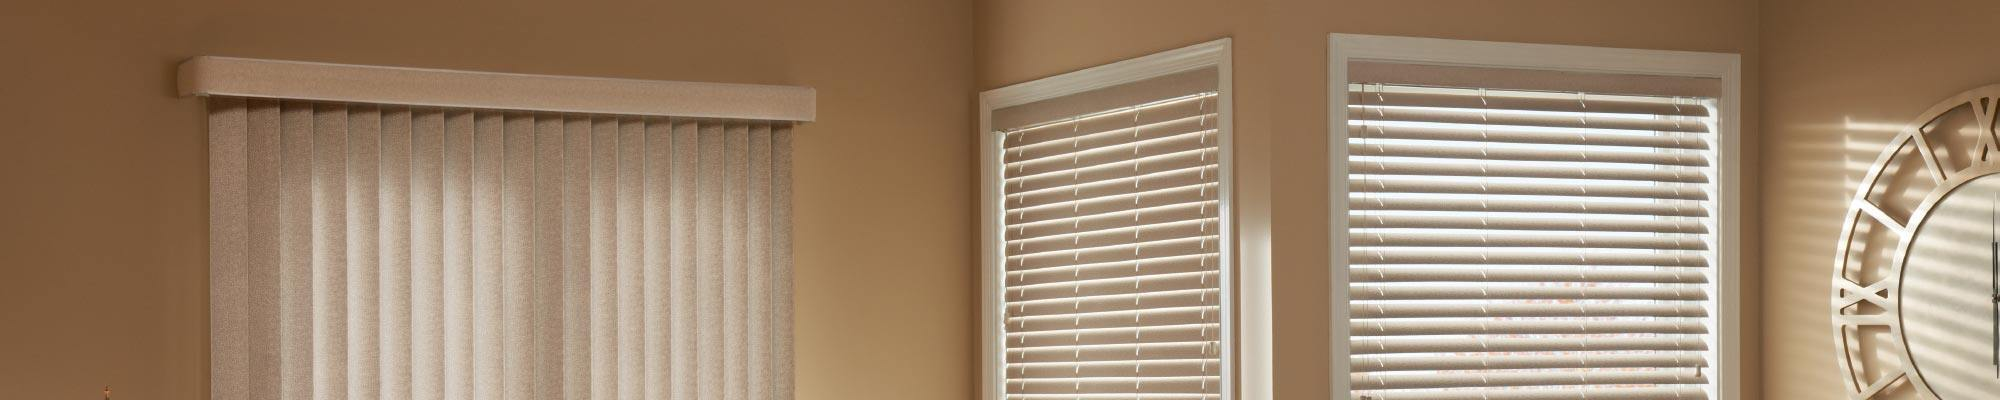 window blinds las vegas nv